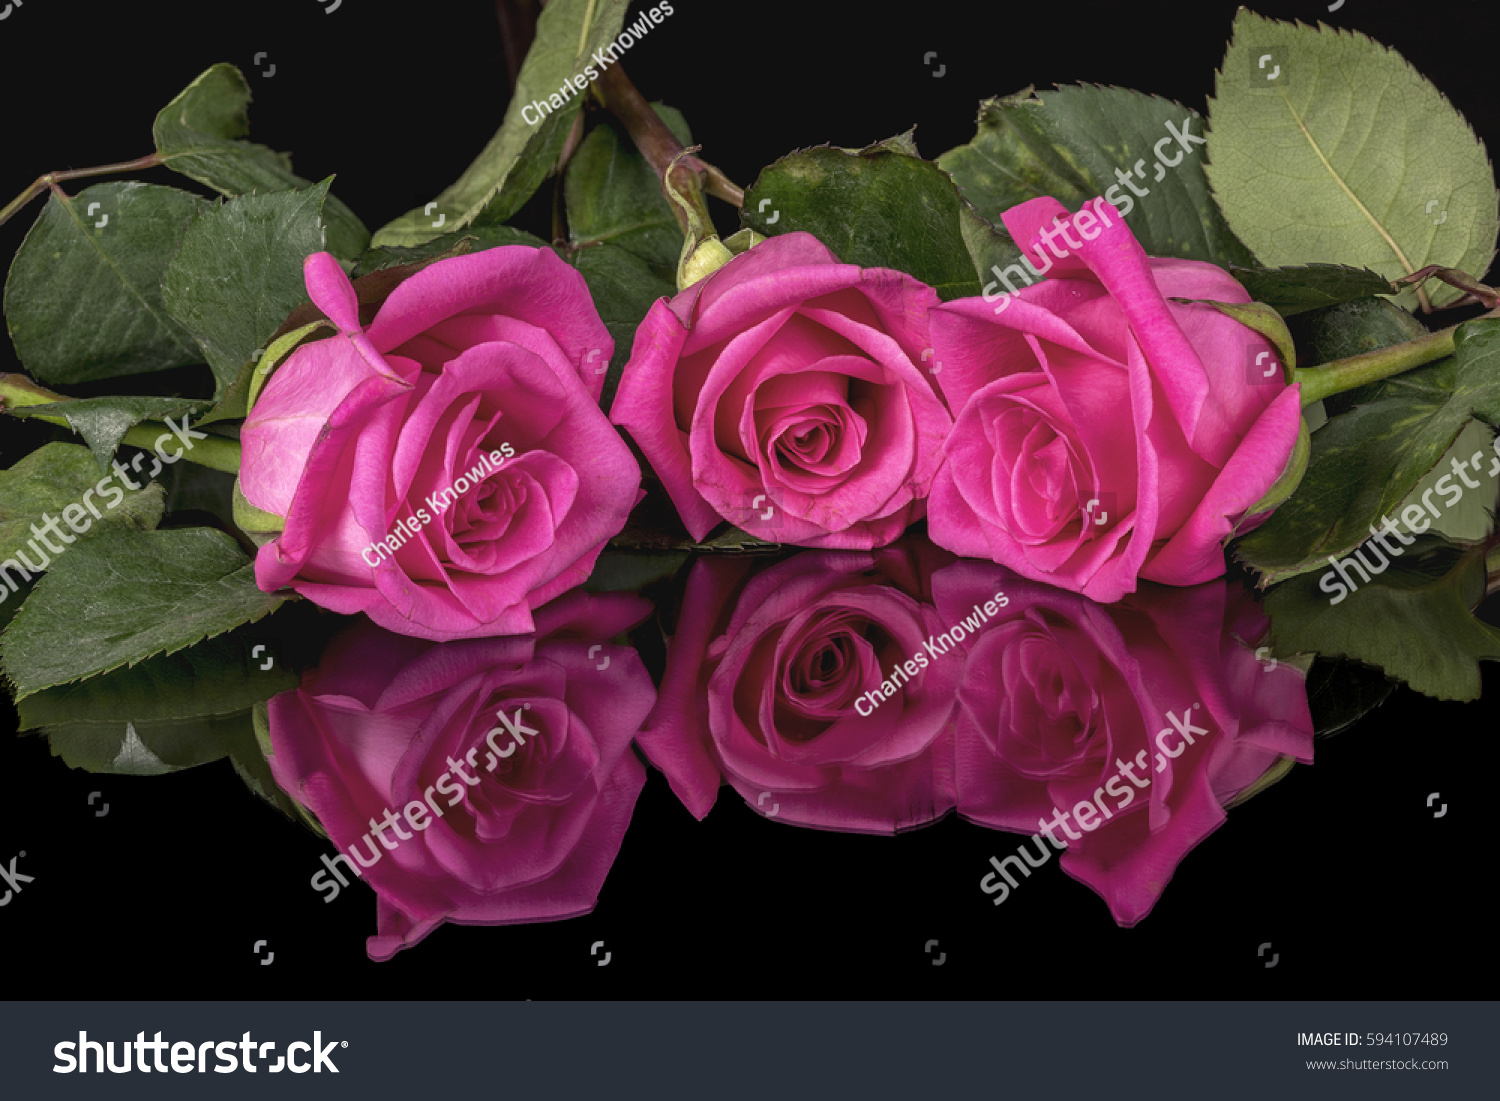 Fresh Natural Roses Pink Green Stock Photo 594107489 - Shutterstock